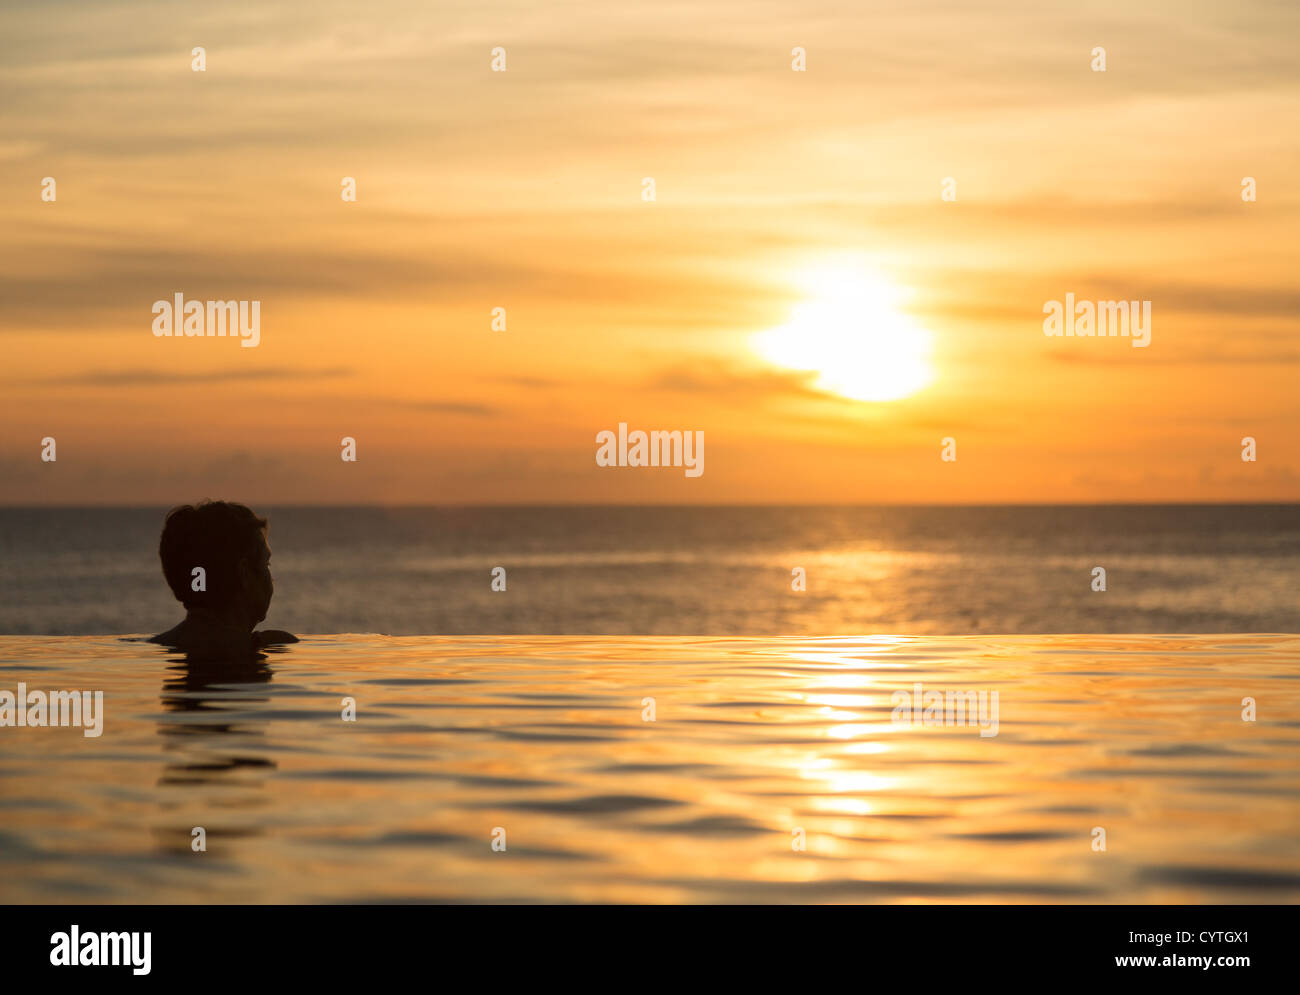 Silhouette of person head at the edge of a beautiful infinity pool overlooking sunset ocean - Stock Image